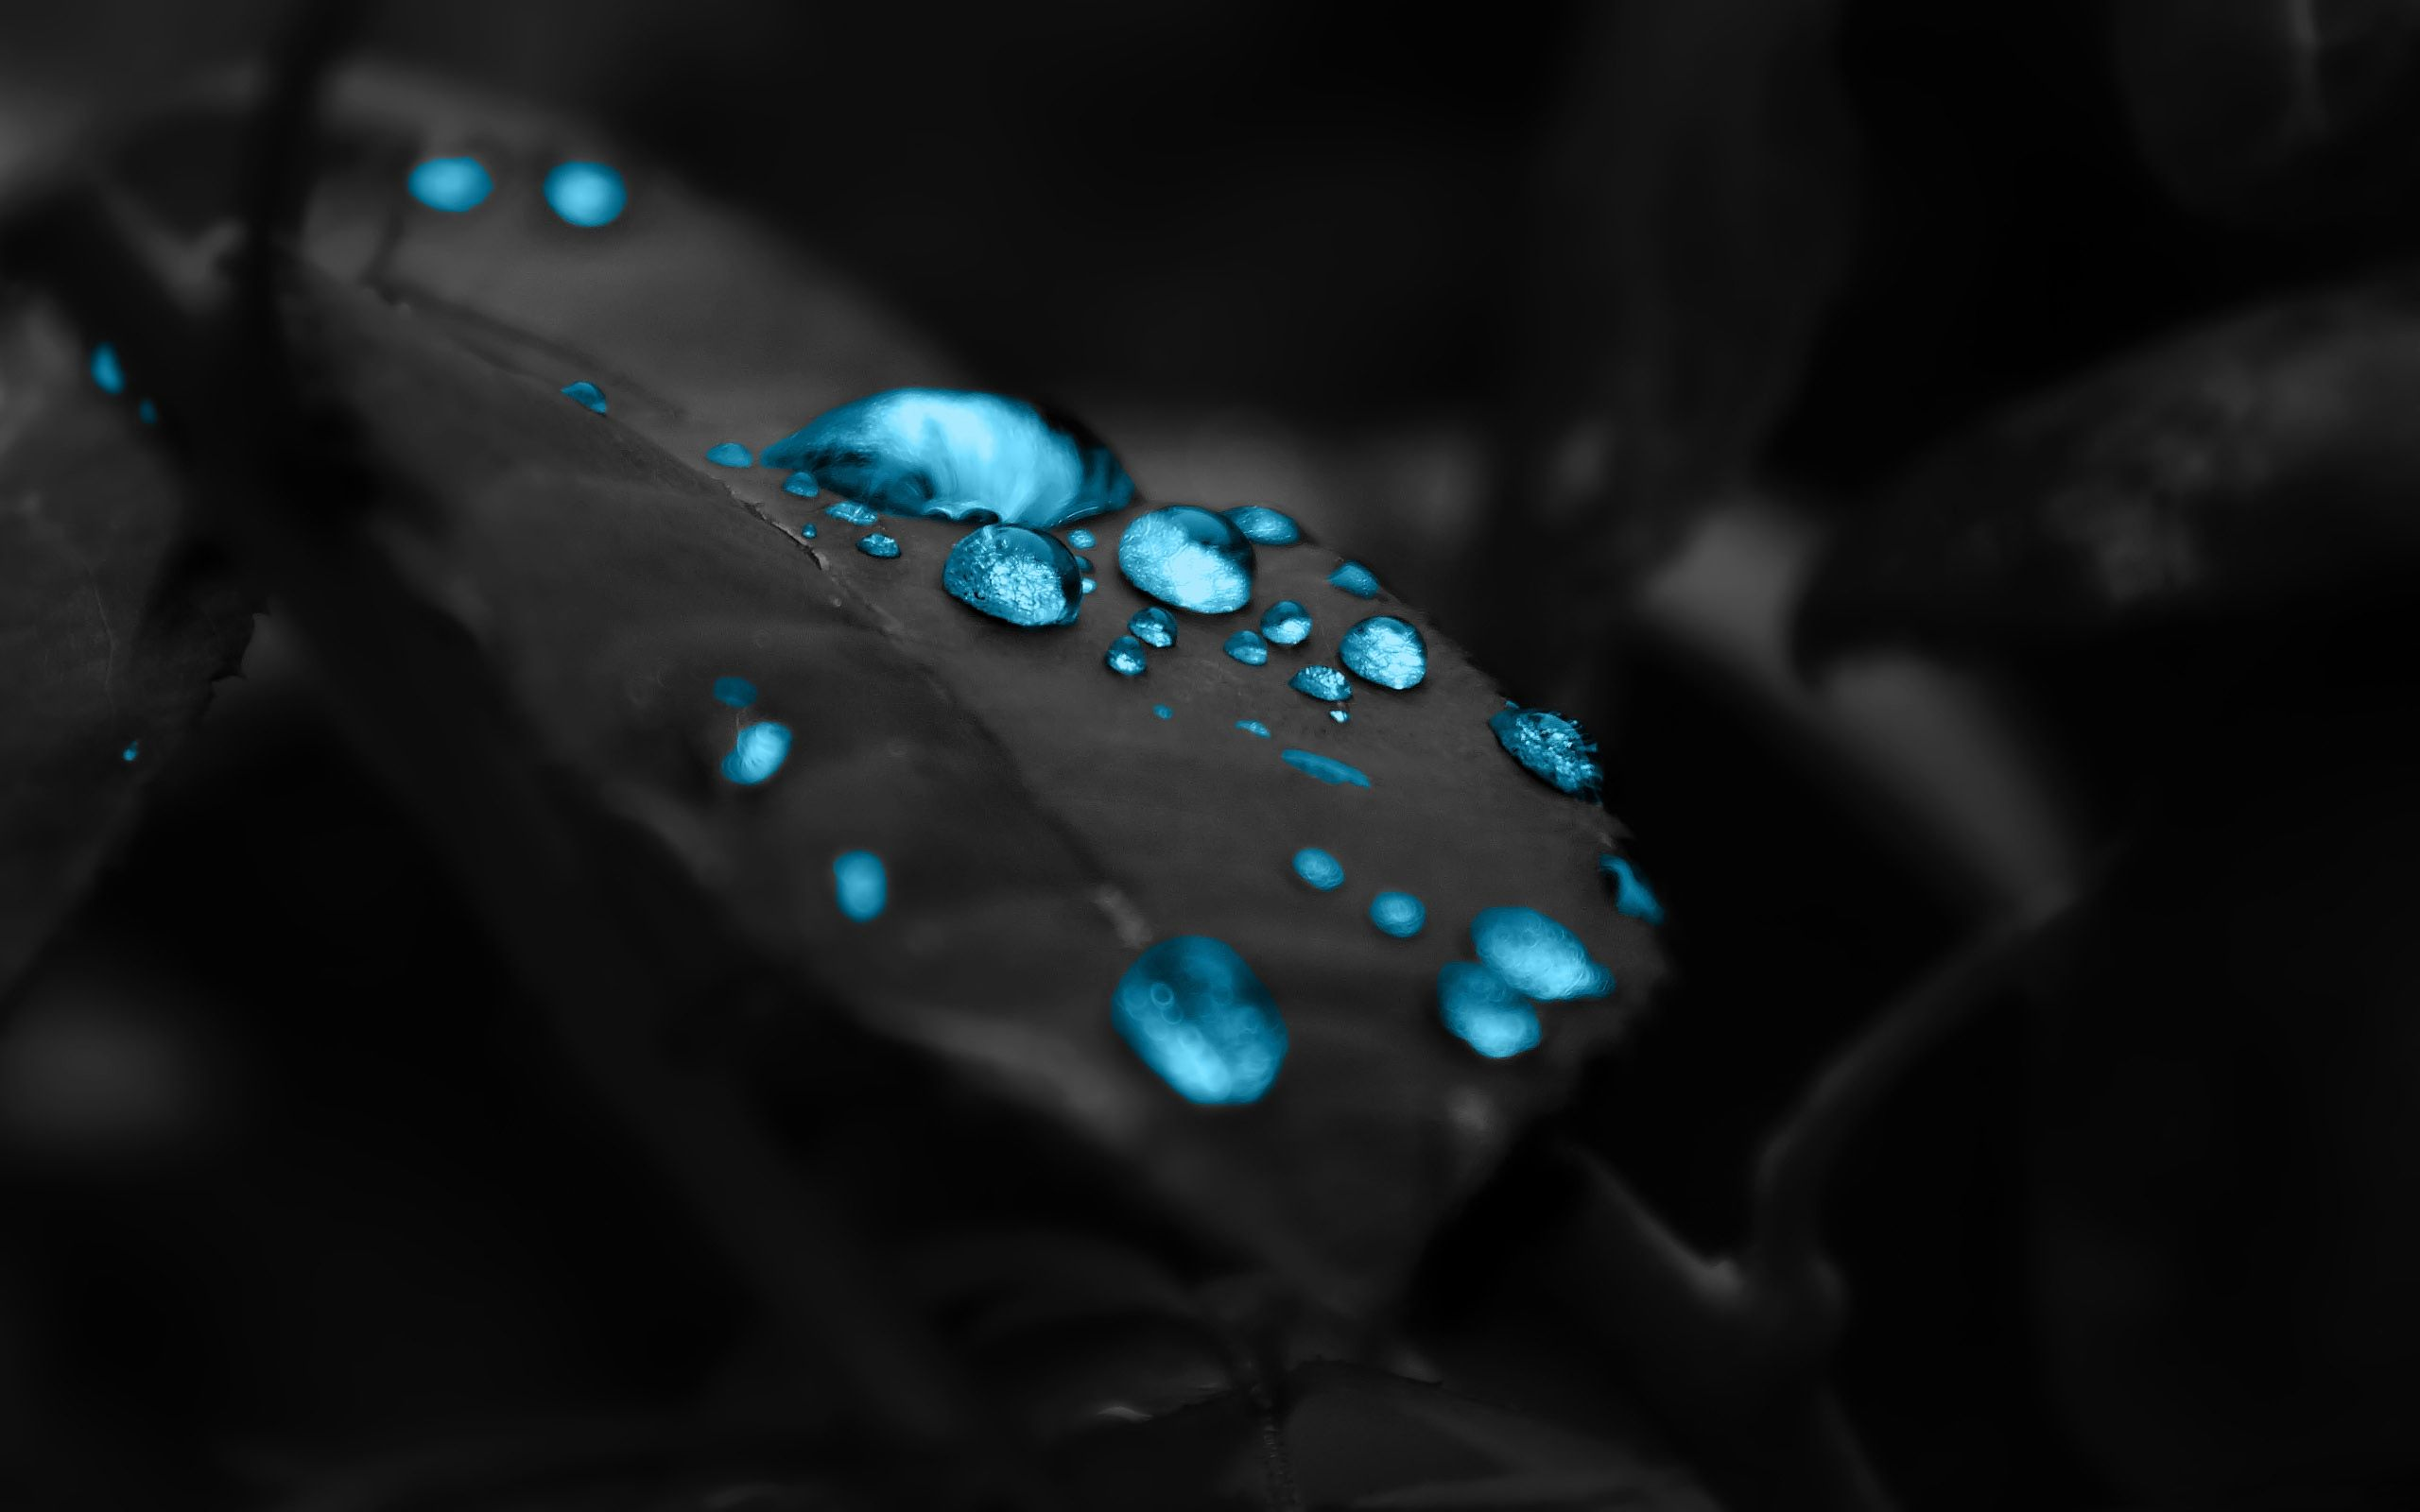 Blue Water Drop Best Pictures Wallpapers Hd 2560 1600 Blue Water Wallpaper Dark Blue Wallpaper Blue Wallpapers